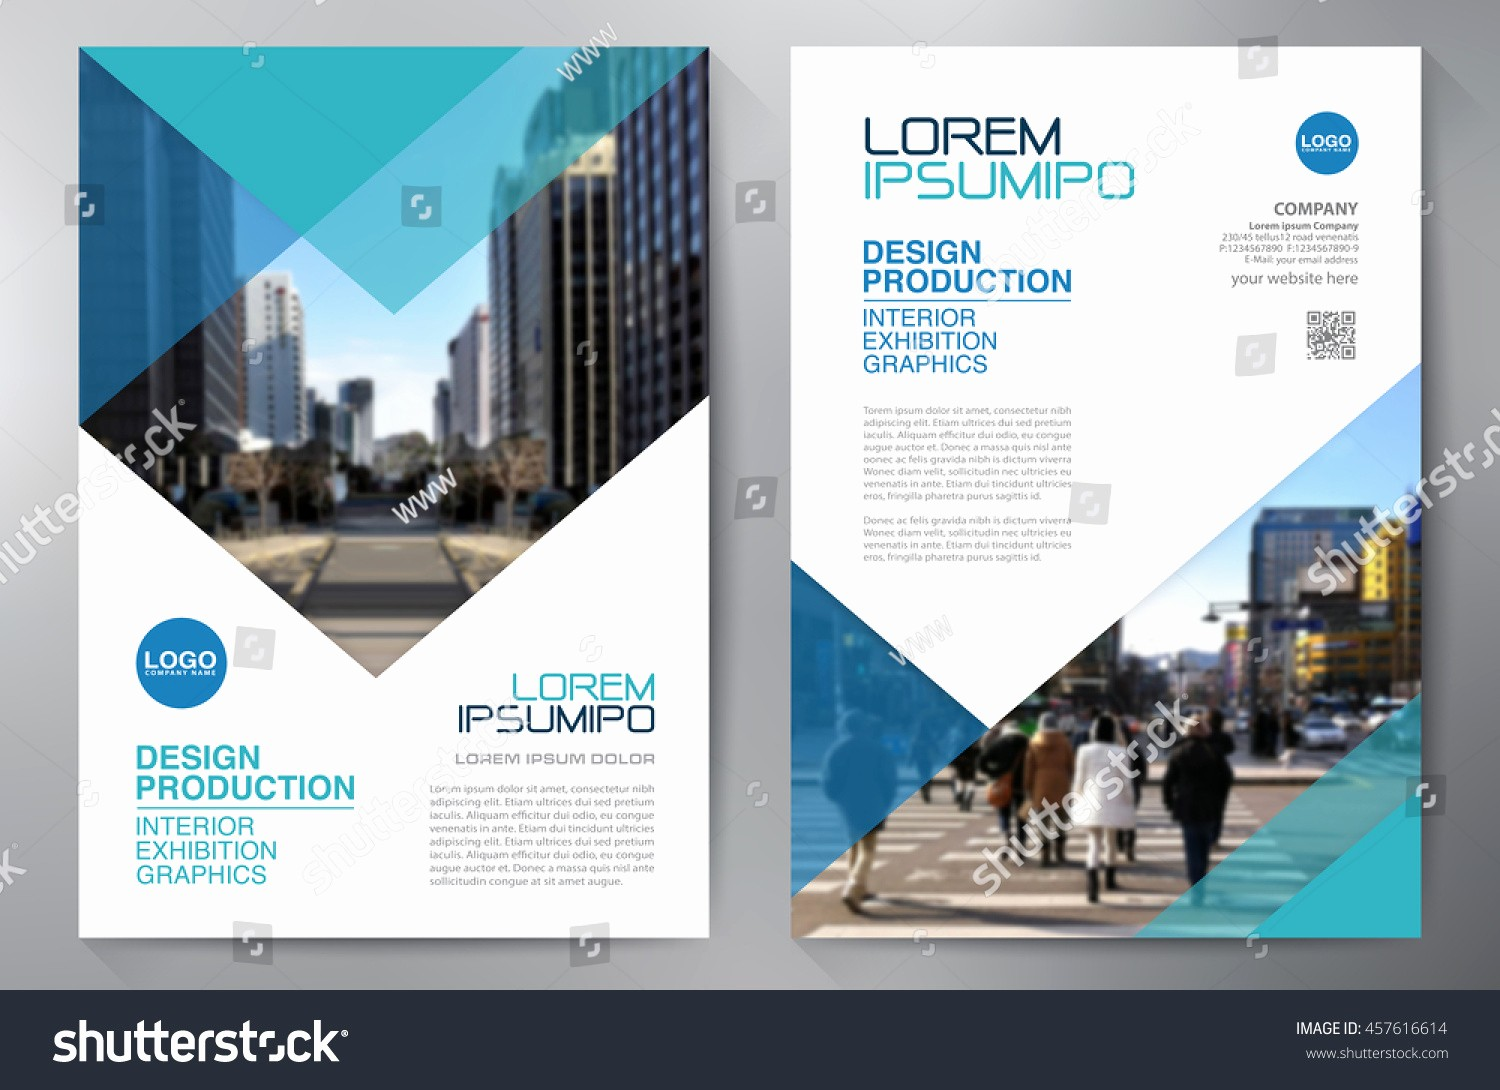 Templates for Flyers and Brochures Lovely Business Brochure Flyer Design A4 Template Stock Vector